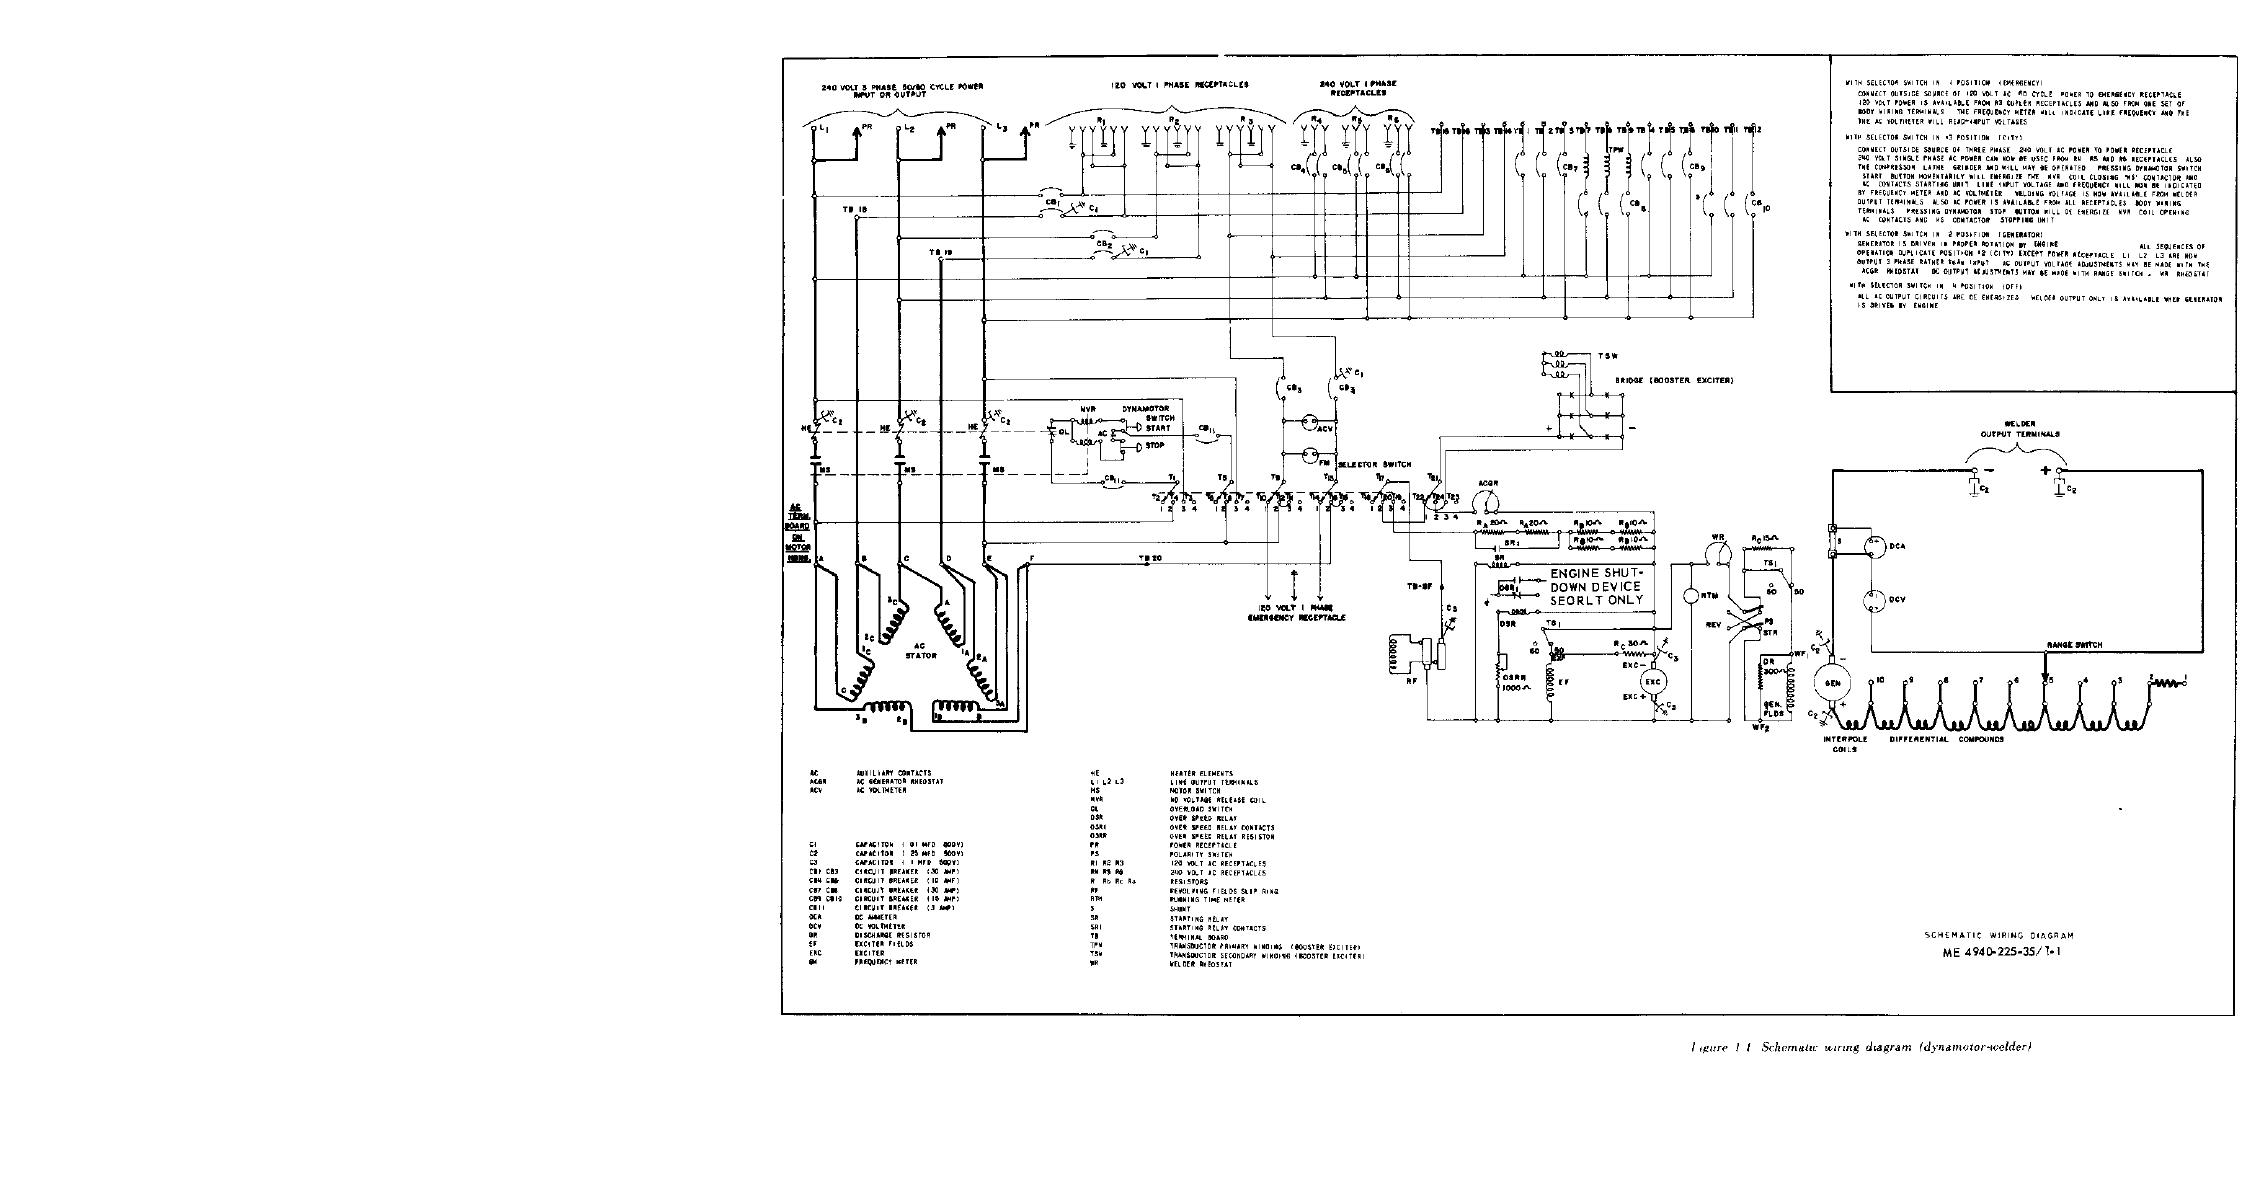 lincoln 225 welder generator wiring diagrams with Welder Generator Wiring Diagram on Hobart A200 Wiring Diagram together with Lincoln 225 Wiring Diagram further Lincoln Sa 200 Wiring Diagram together with Sa 200 F163 Wiring Diagram additionally Welder Sa 200 Remote Control Wiring Diagram.